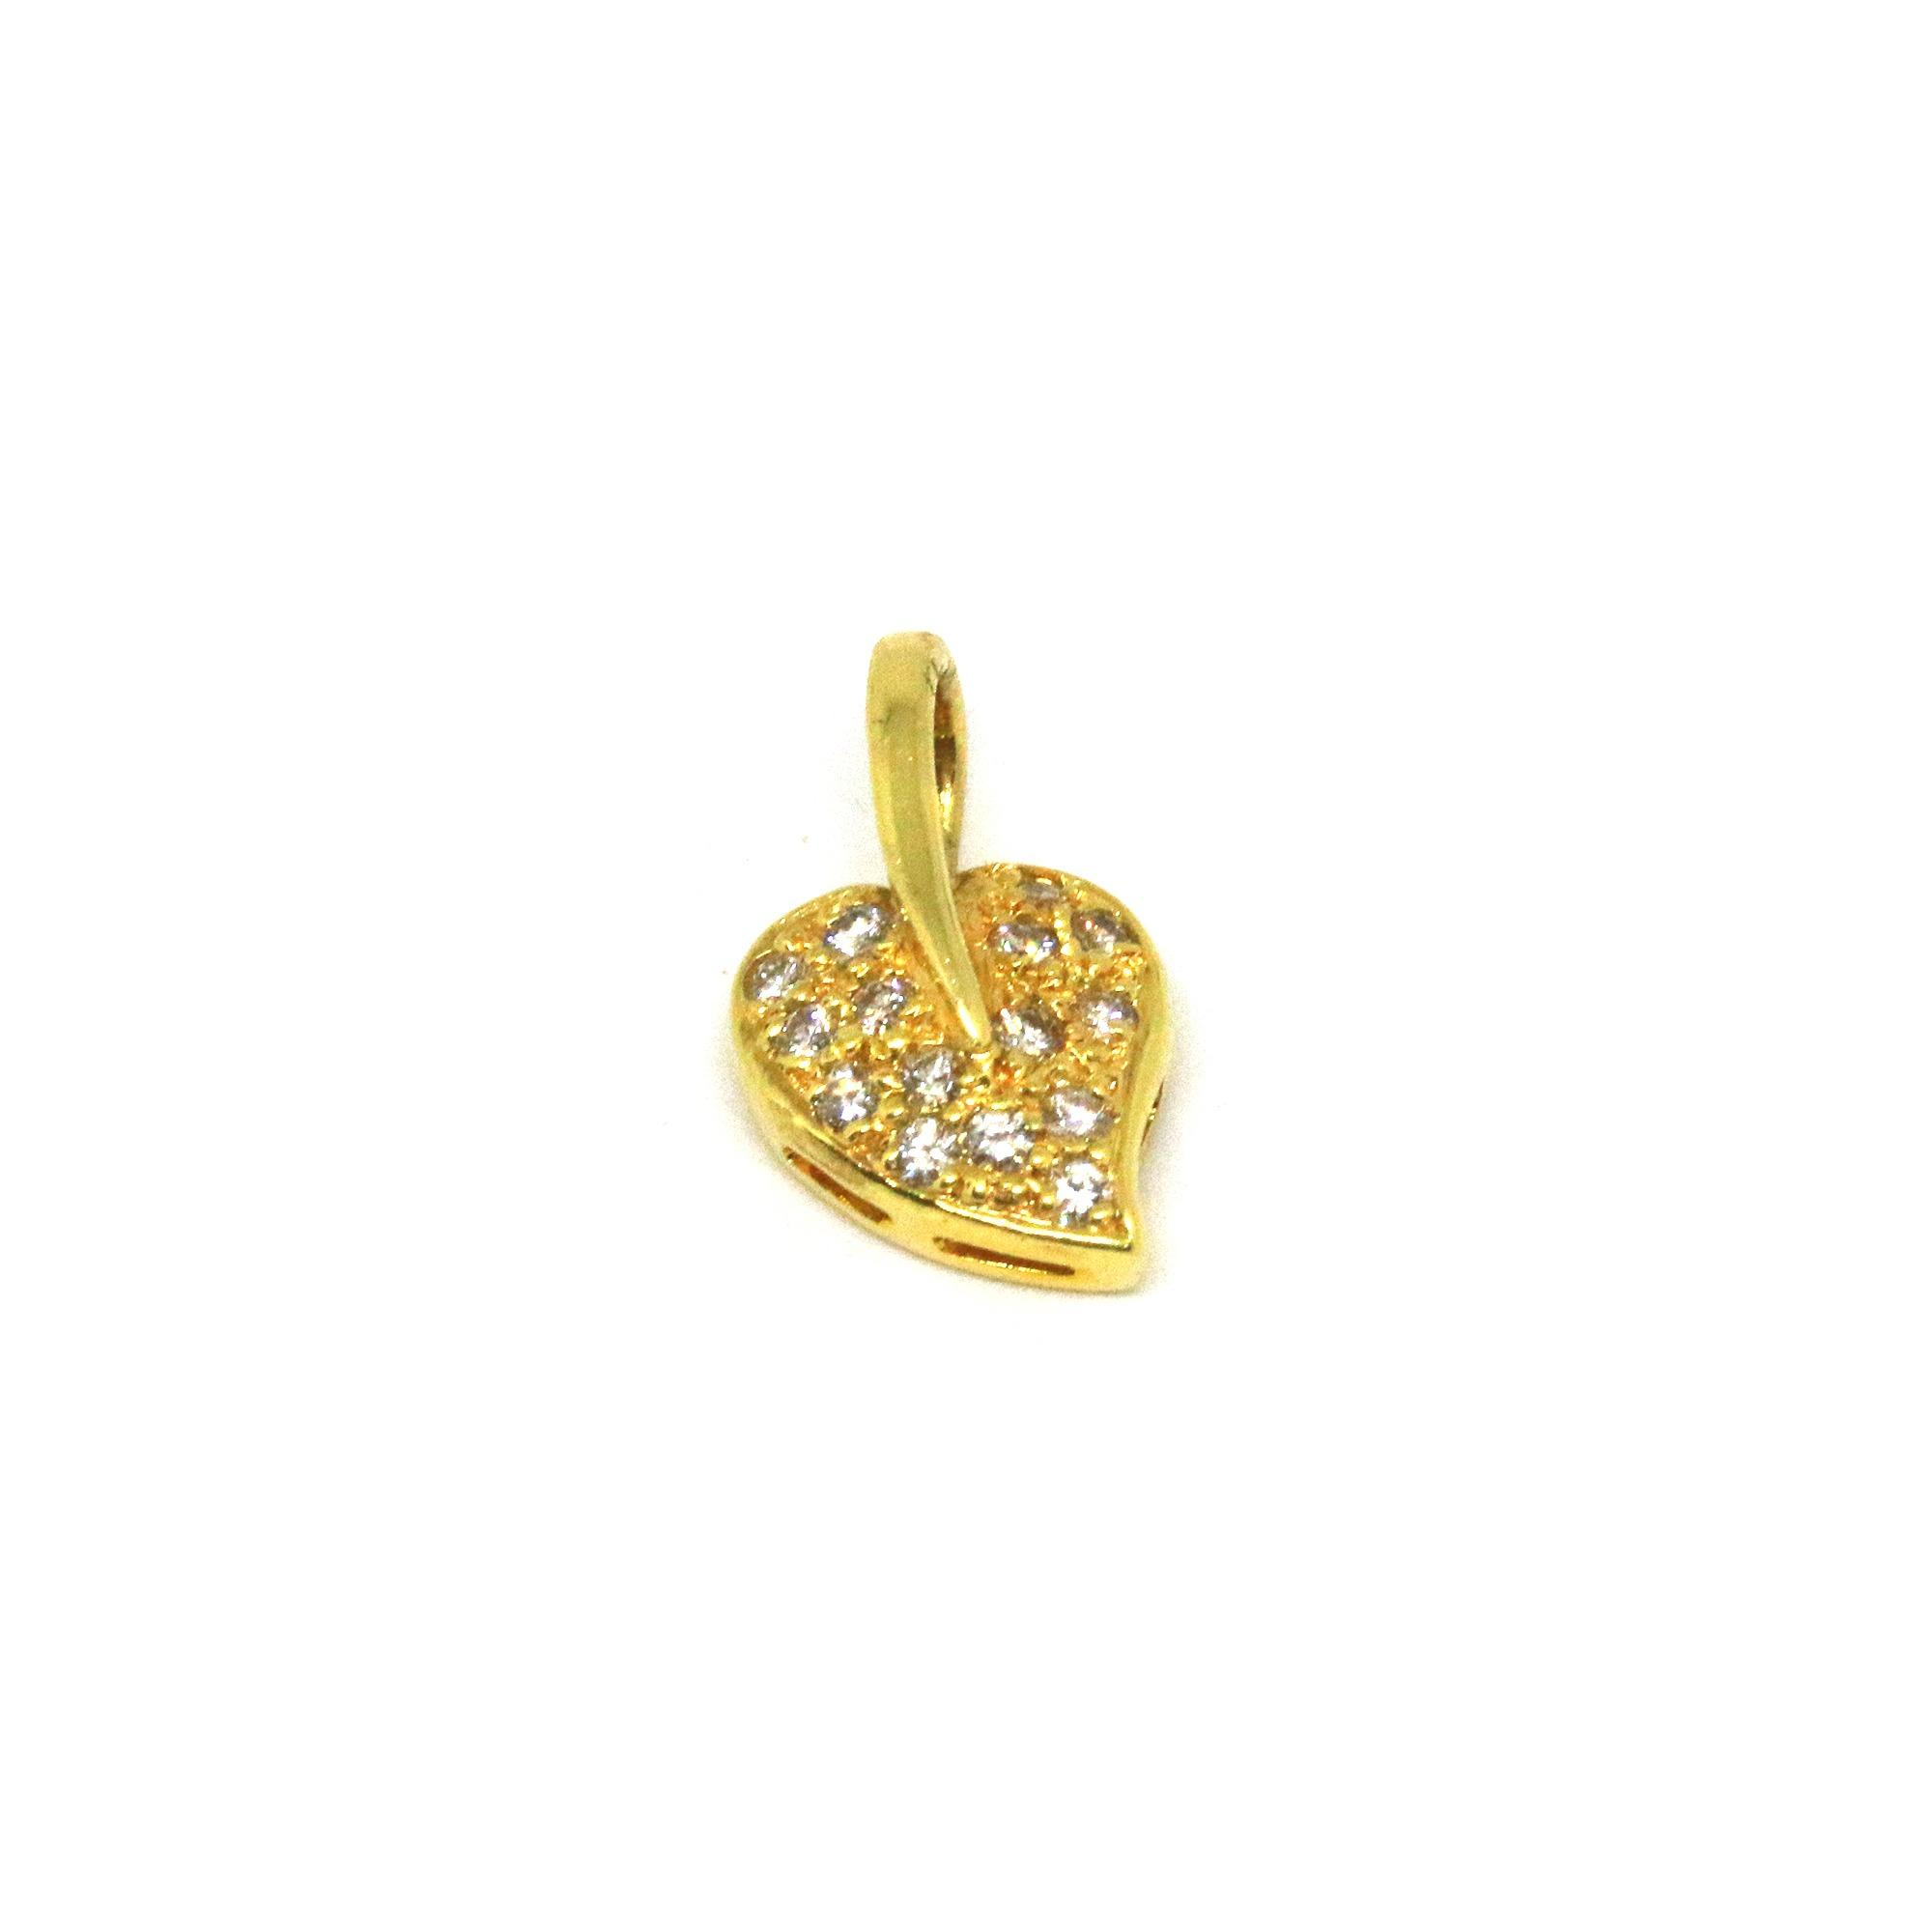 free yellow gold dolphin pendant jewelry shipping overstock product today necklace watches